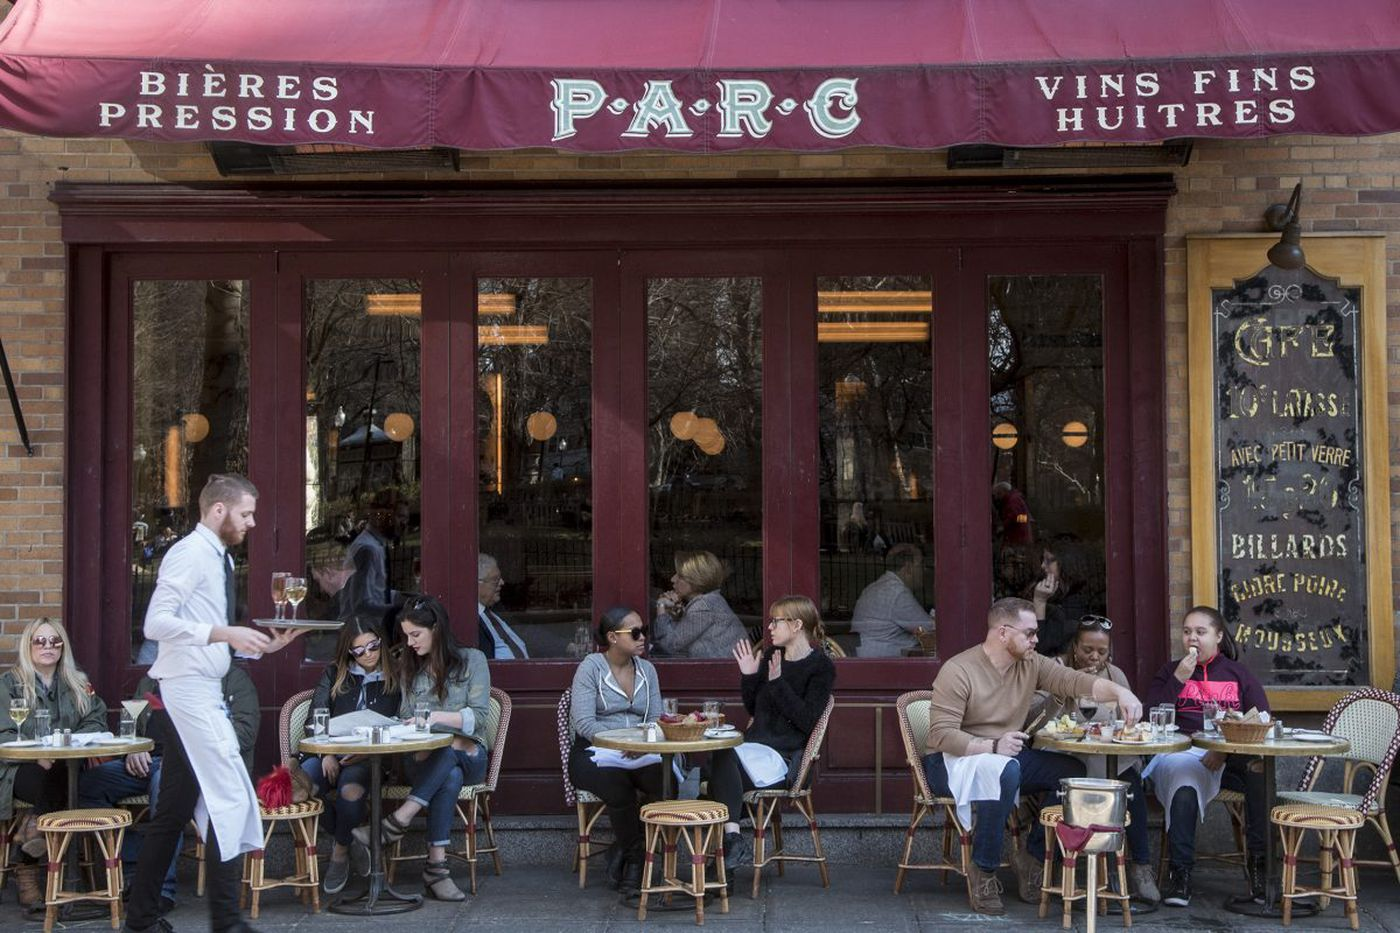 Waiter wars: Parc, Zahav restaurants tripped up by tips